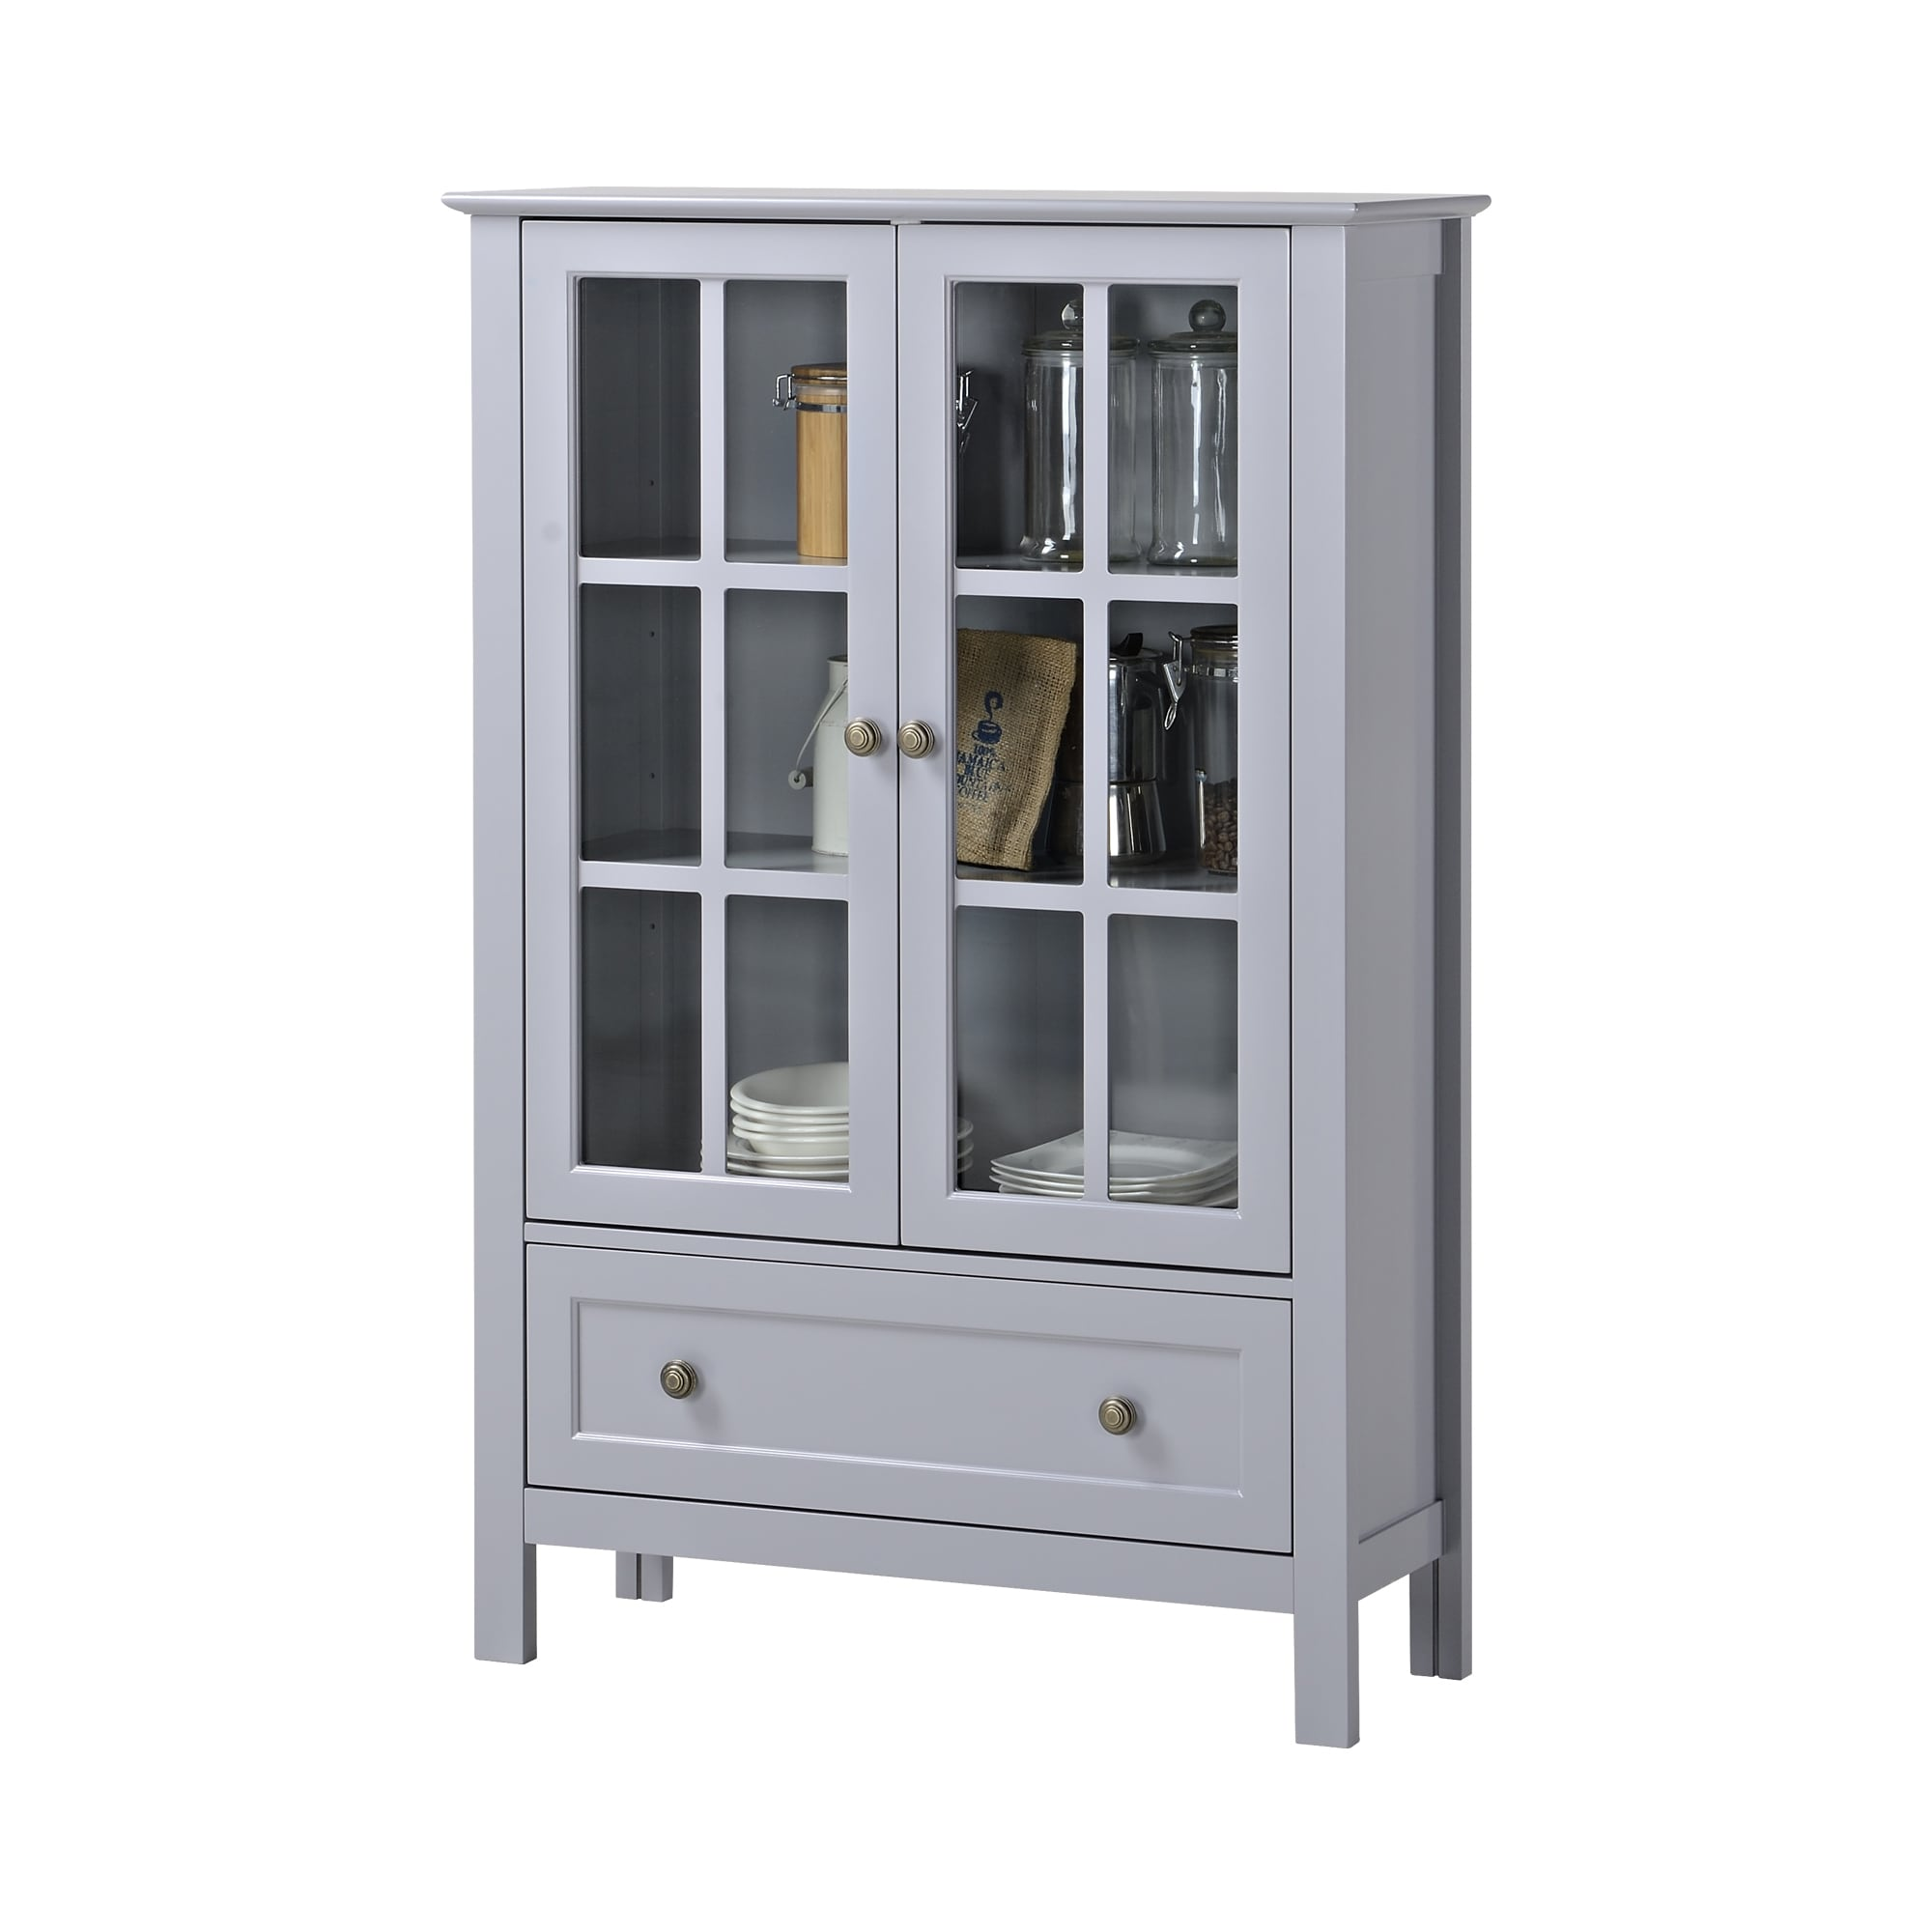 supply display cabinet narrow beautiful di glass store slim tall cabinets thin museum showcases wall oak case